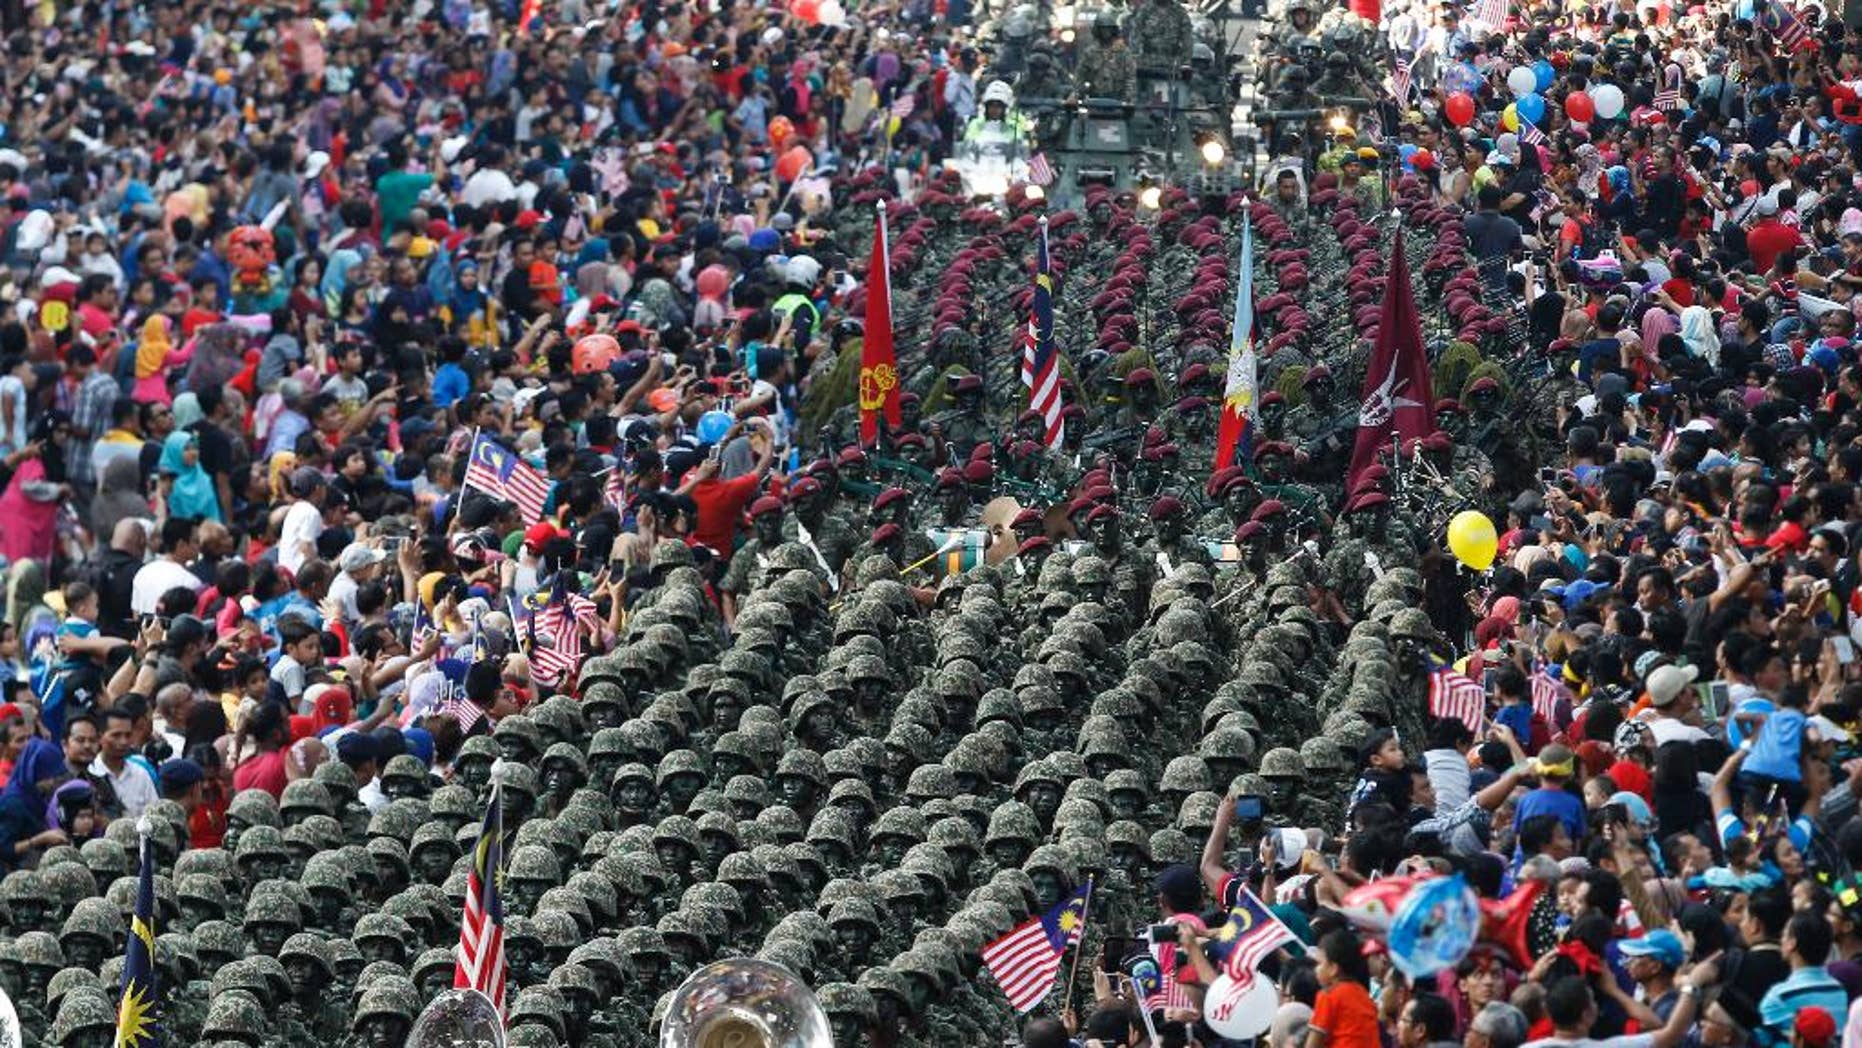 Malaysian Army personnel marching at the Independence Square in Kuala Lumpur Wednesday.